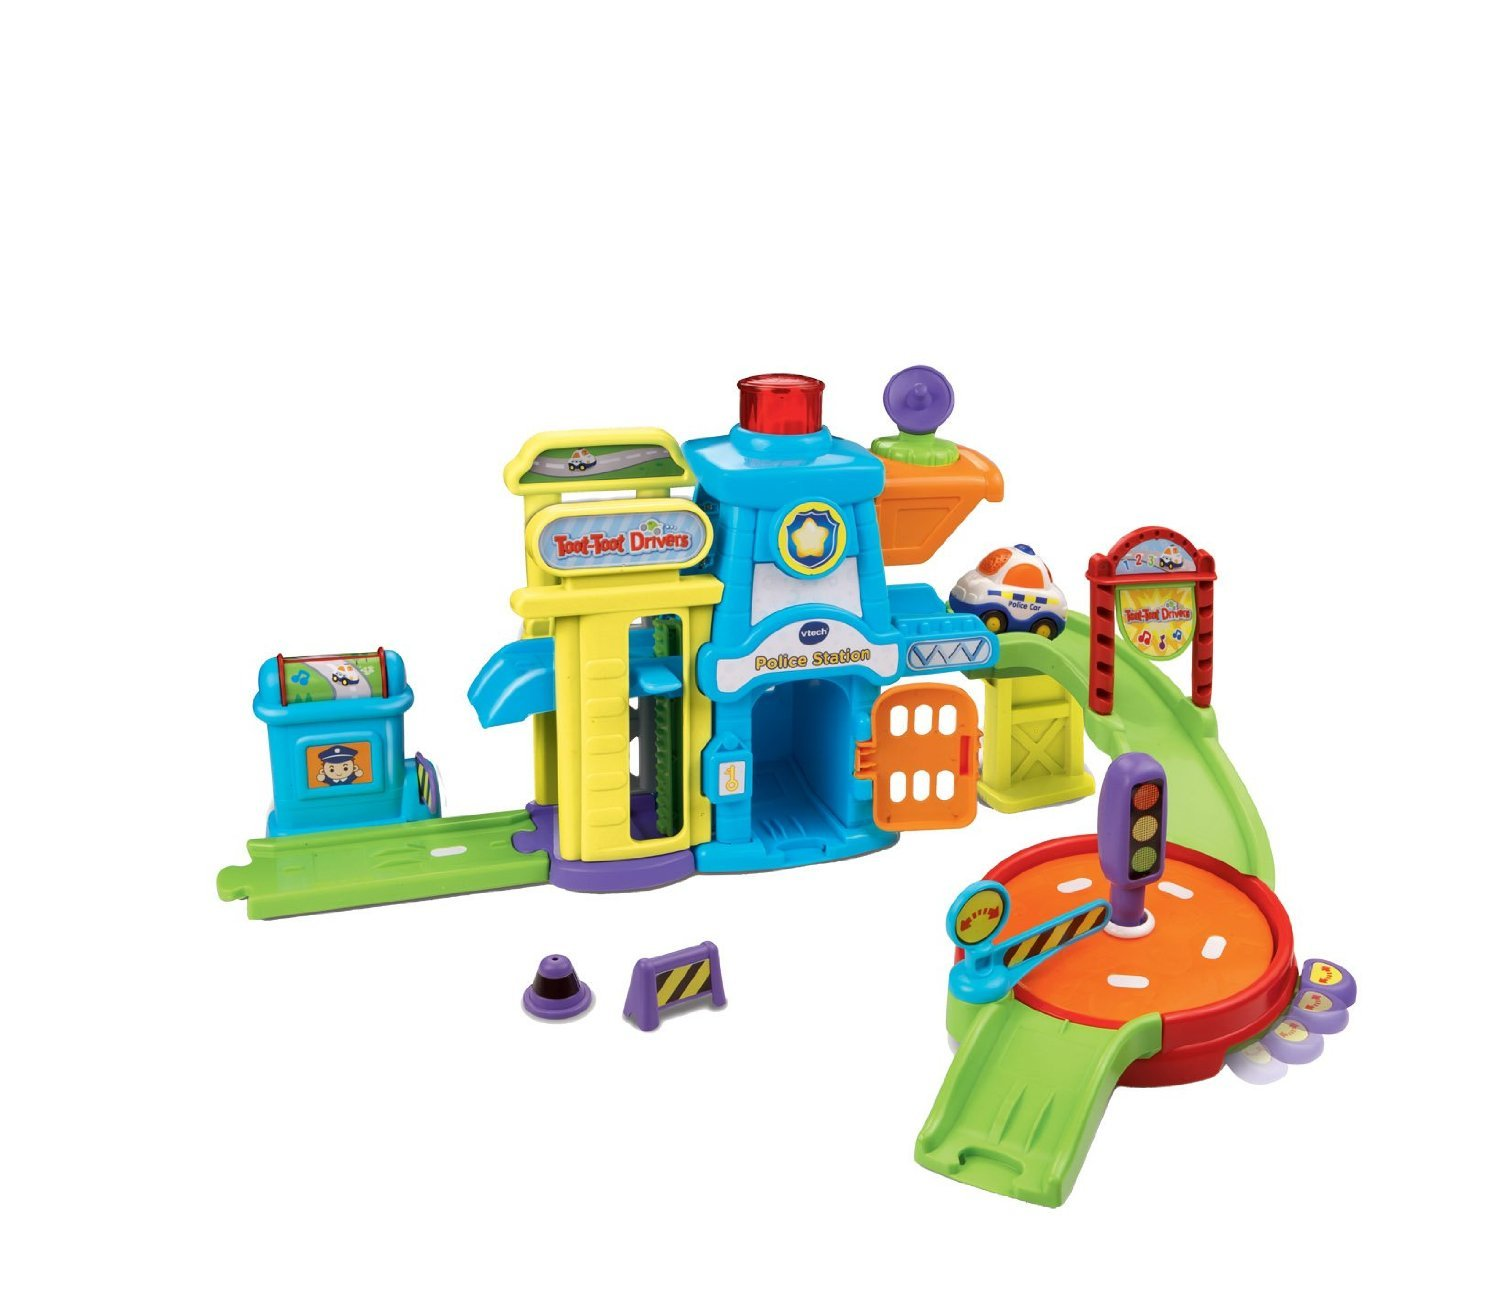 VTech Toot-Toot Drivers Police Station image